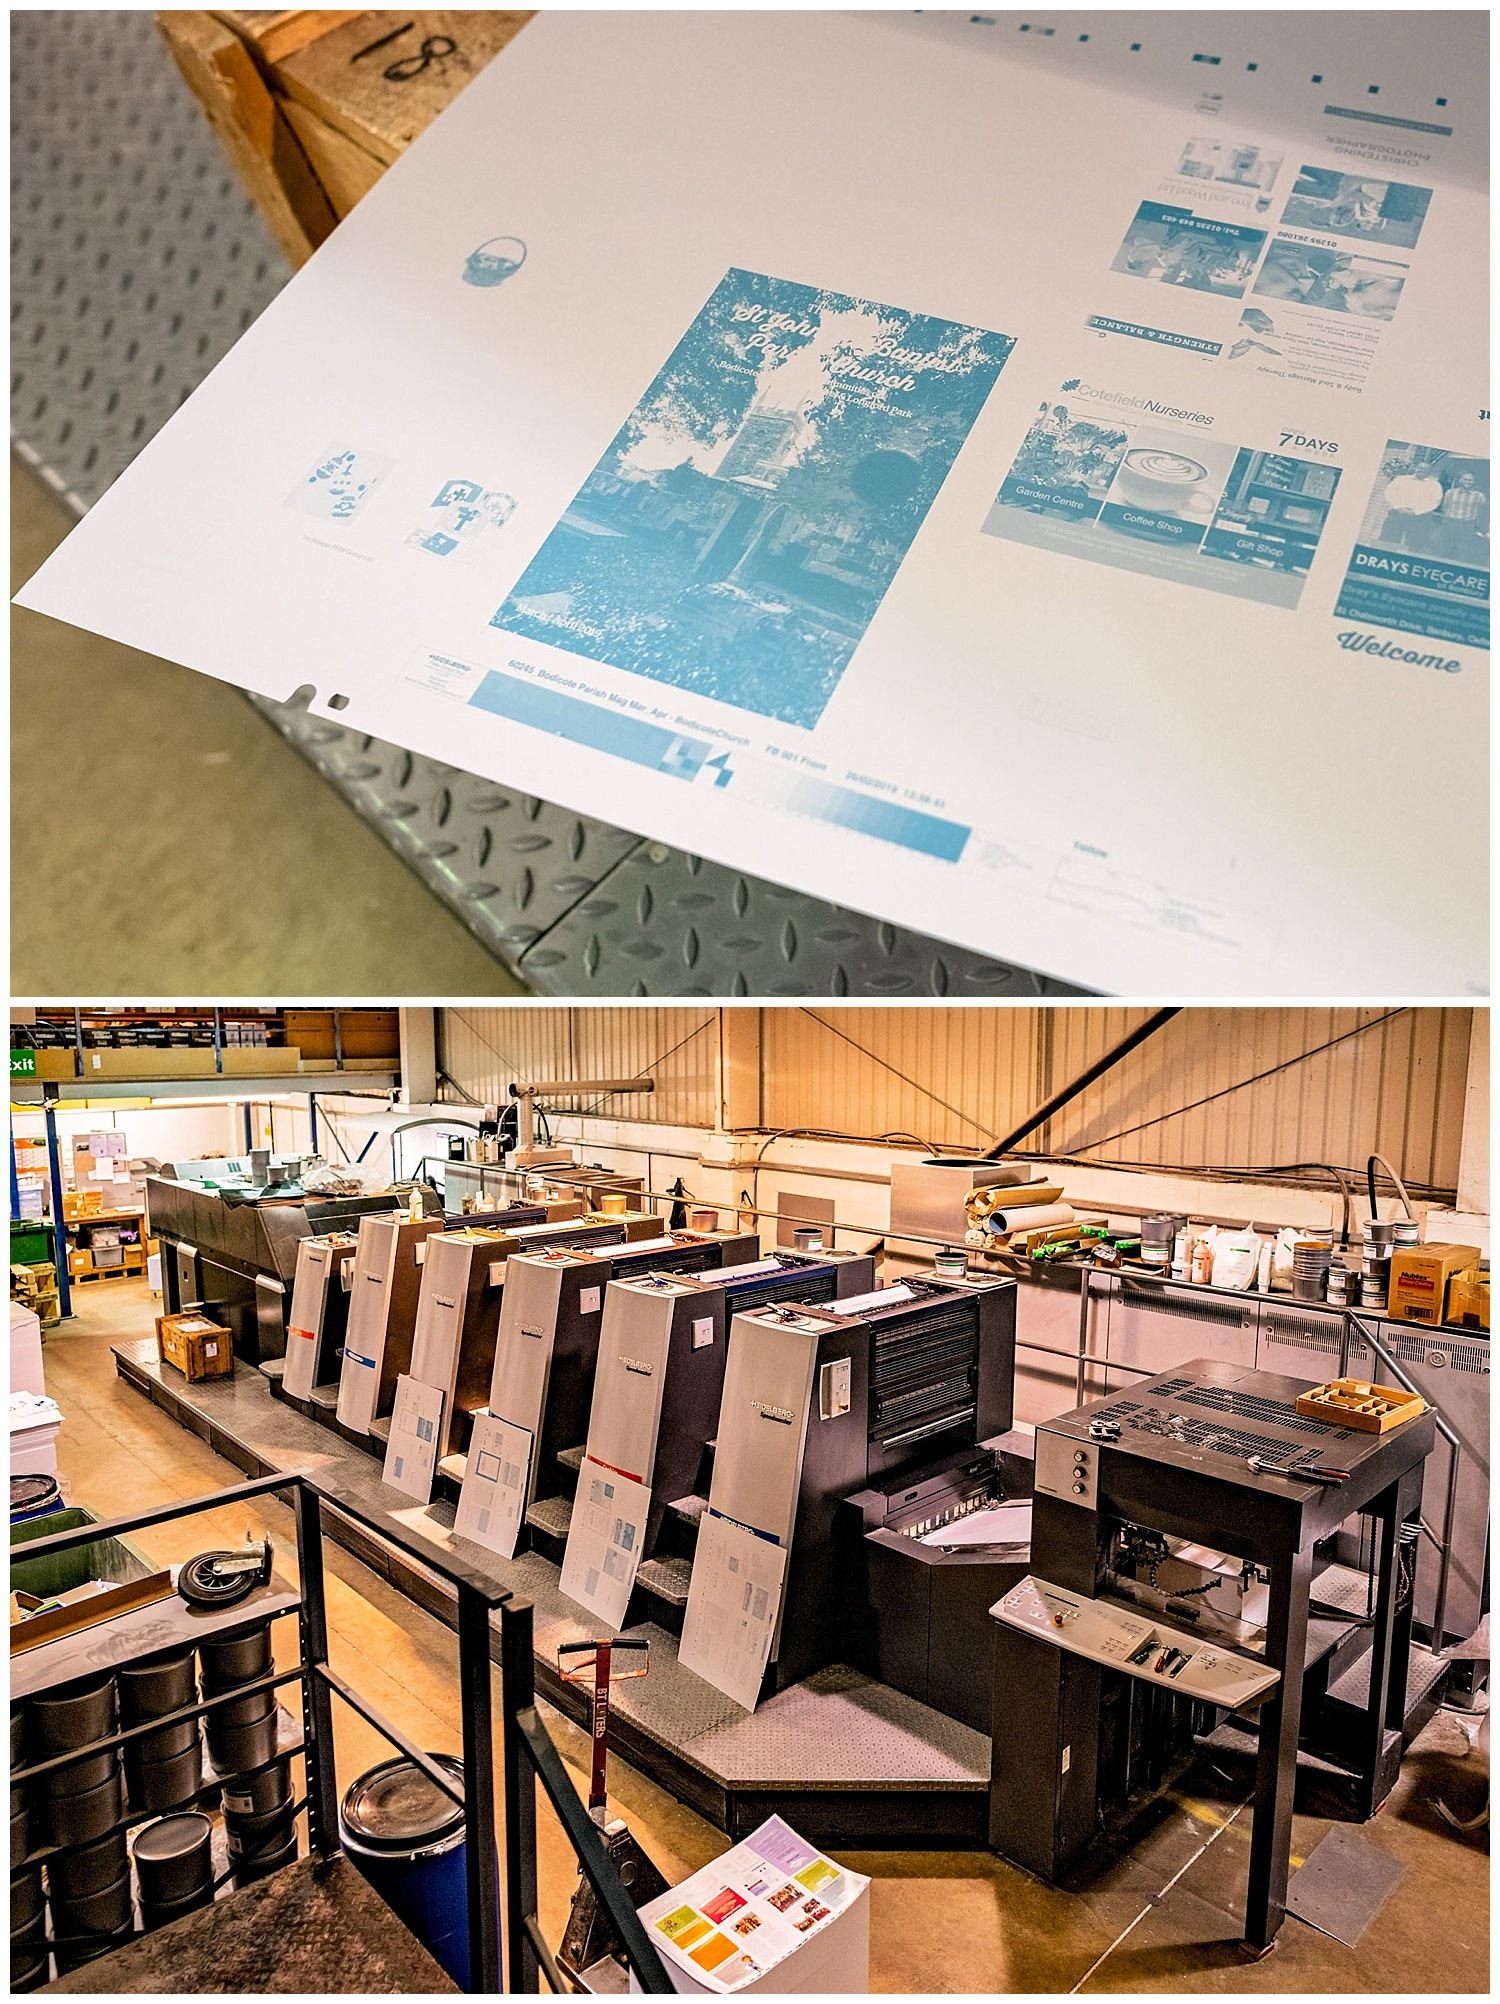 Printing plates pictured alongside a giant printing press